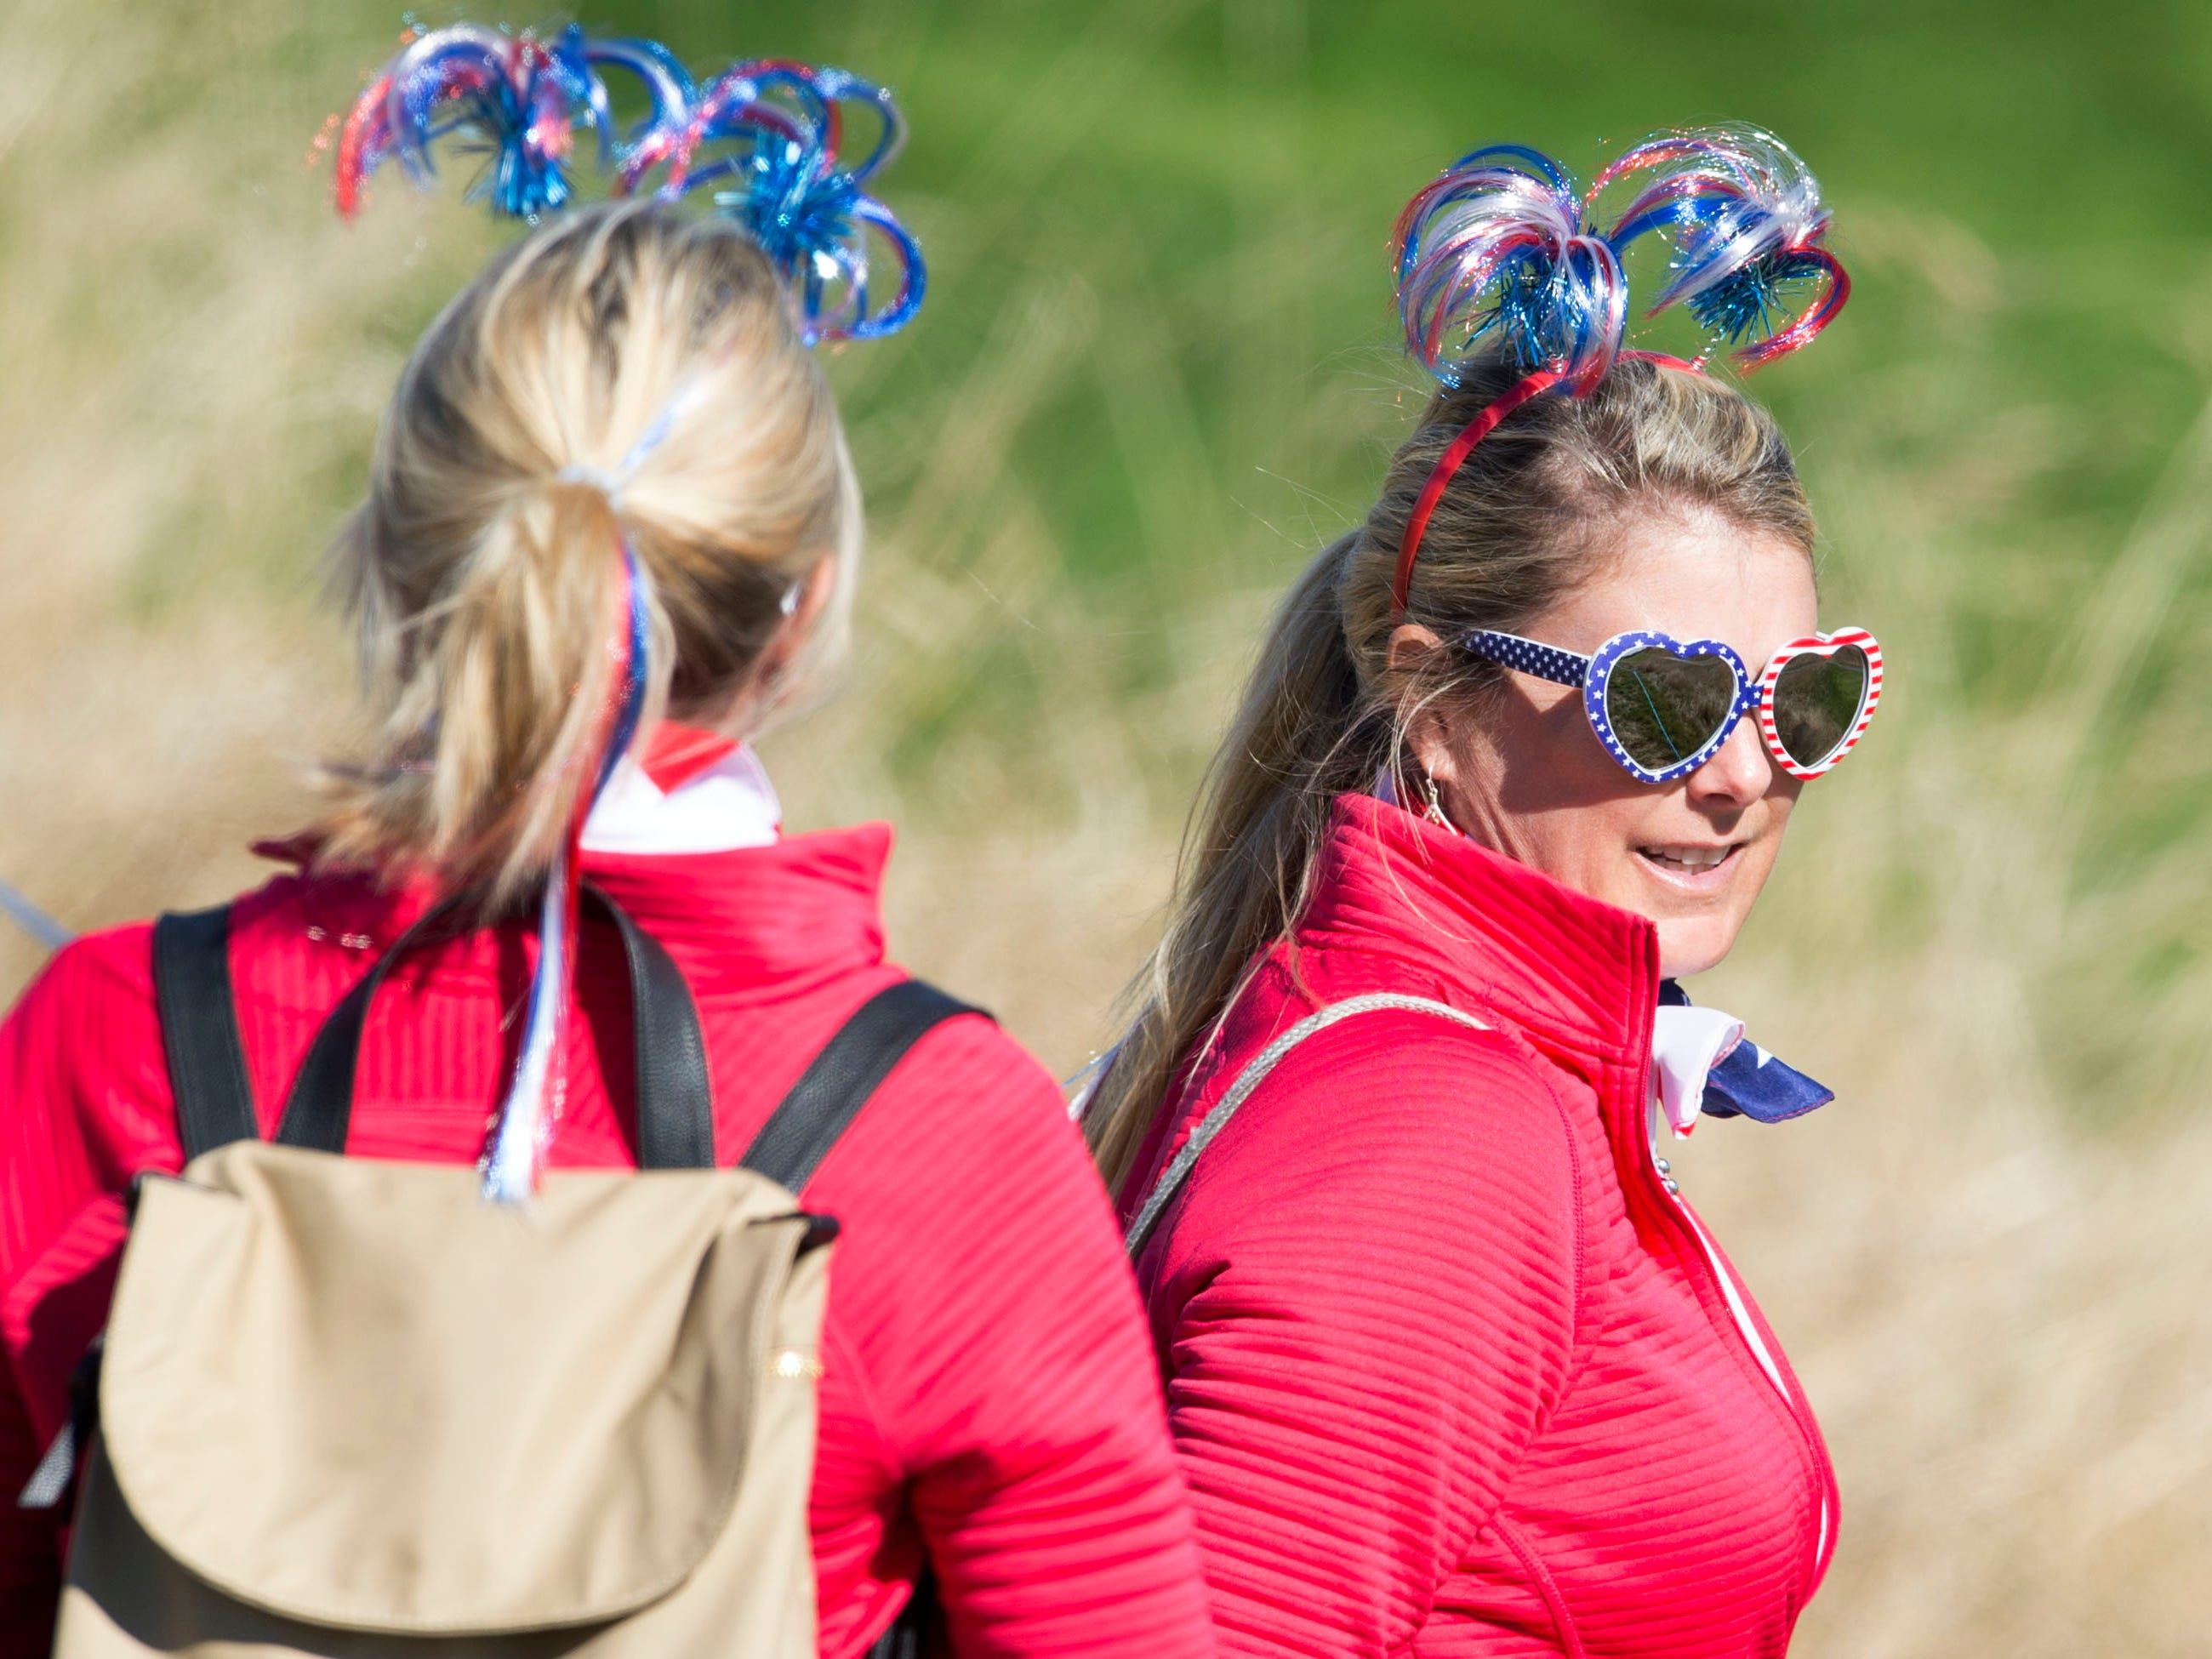 Golf fans during a Ryder Cup practice round.